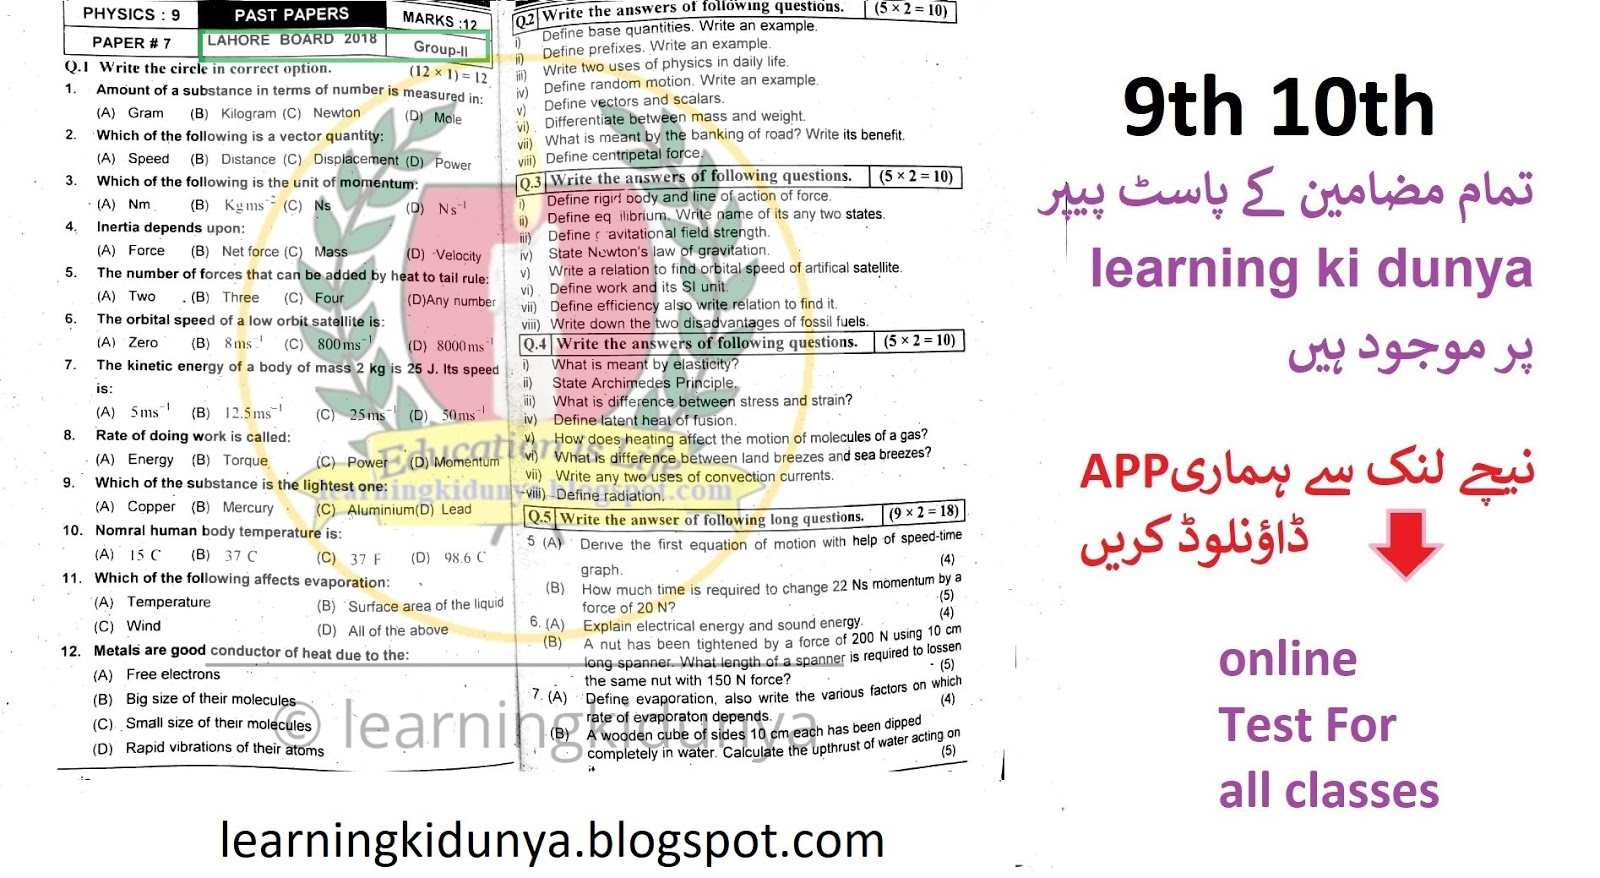 BISE Lahore Board Group 2 9th Class Physics Past Papers 2018